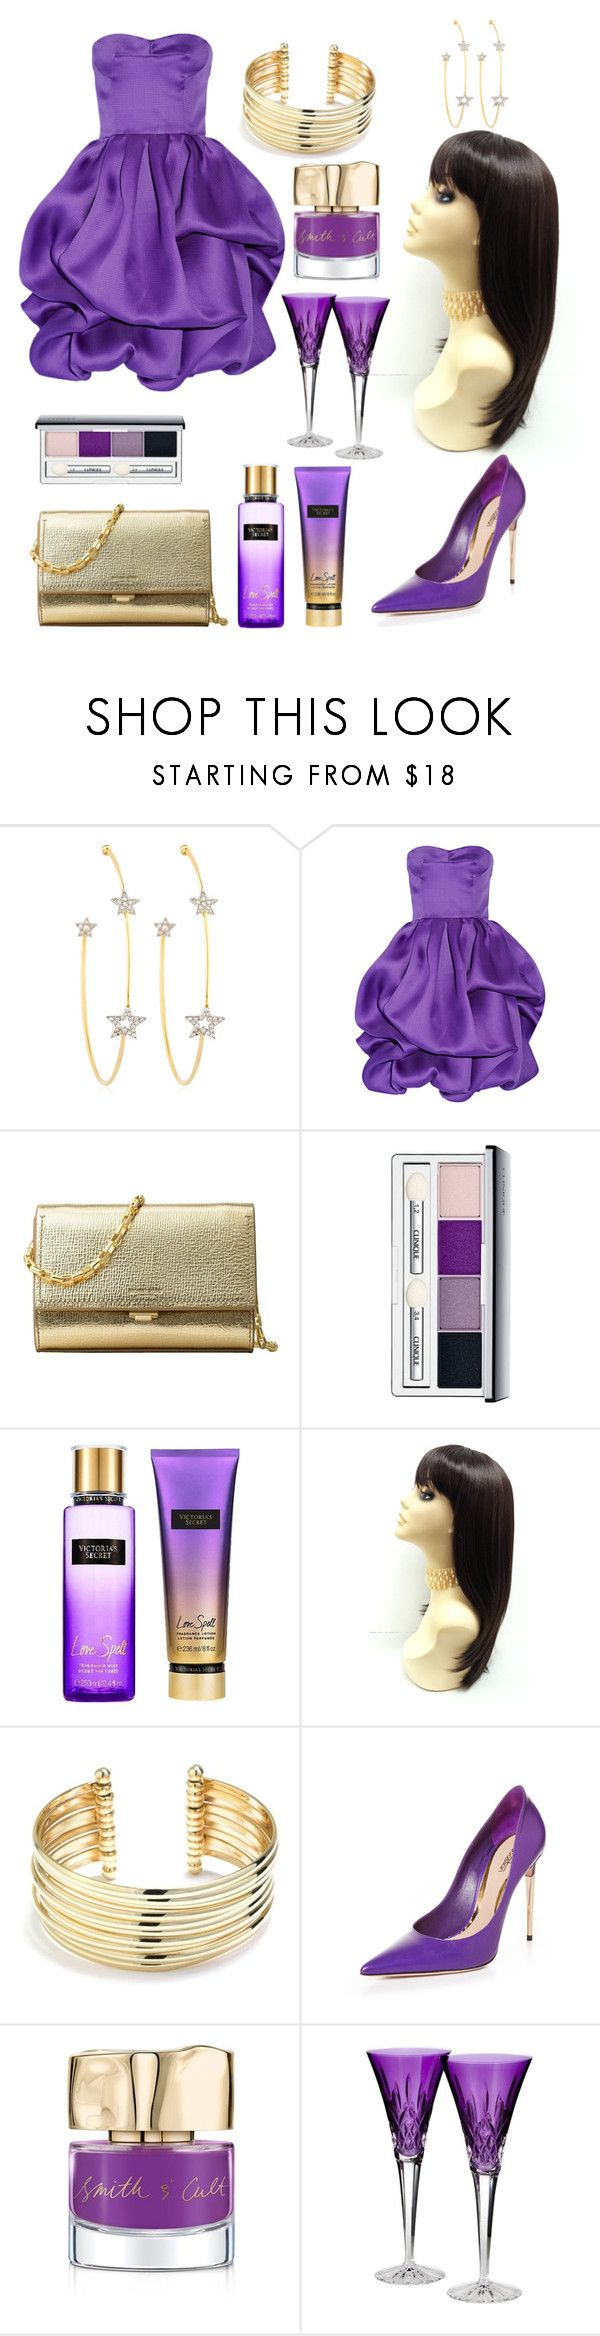 """Royalty"" by brianna-goodwin ❤ liked on Polyvore featuring PERLOTA, Oscar de la Renta, MICHAEL Michael Kors, Clinique, Victoria's Secret, Belk Silverworks, Sebastian Professional, Smith & Cult and Waterford"